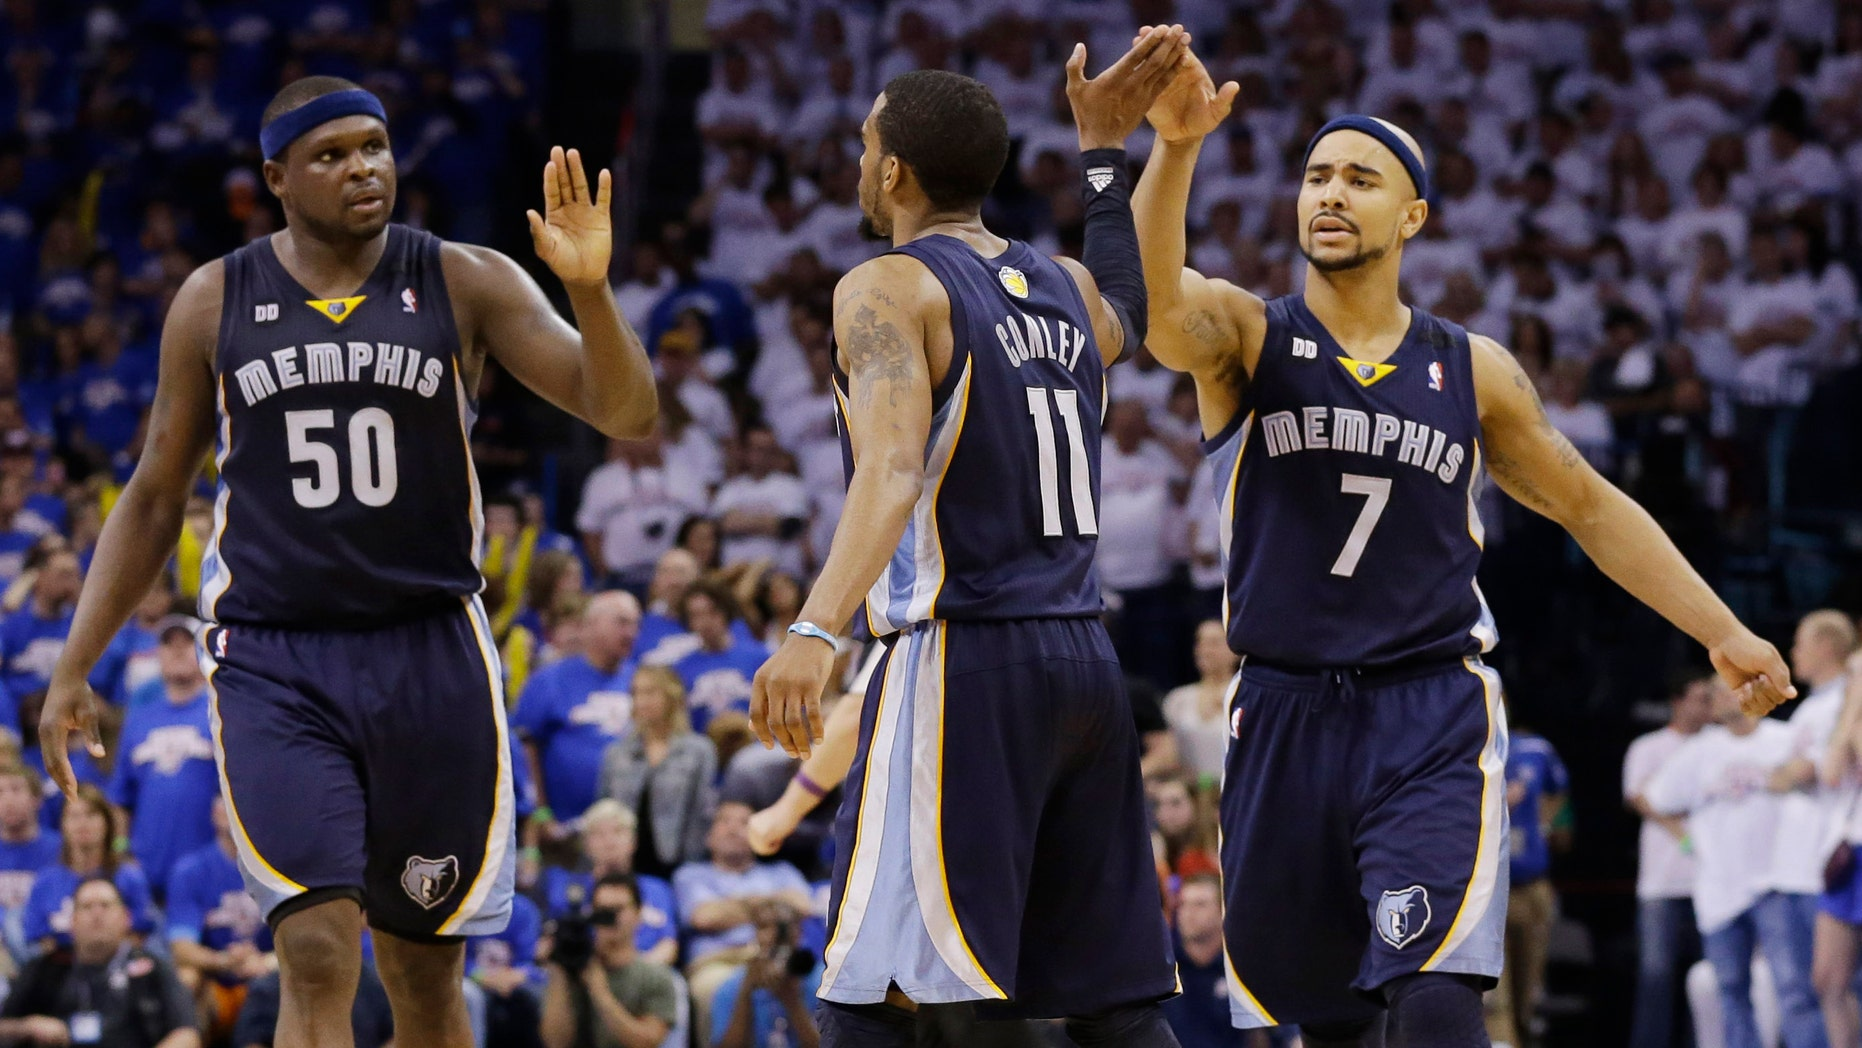 Memphis Grizzlies' Mike Conley (11) celebrates after scoring a basket late in the second half of Game 2 of their Western Conference semifinal NBA basketball playoff series Tuesday, May 7, 2013, in Oklahoma City.